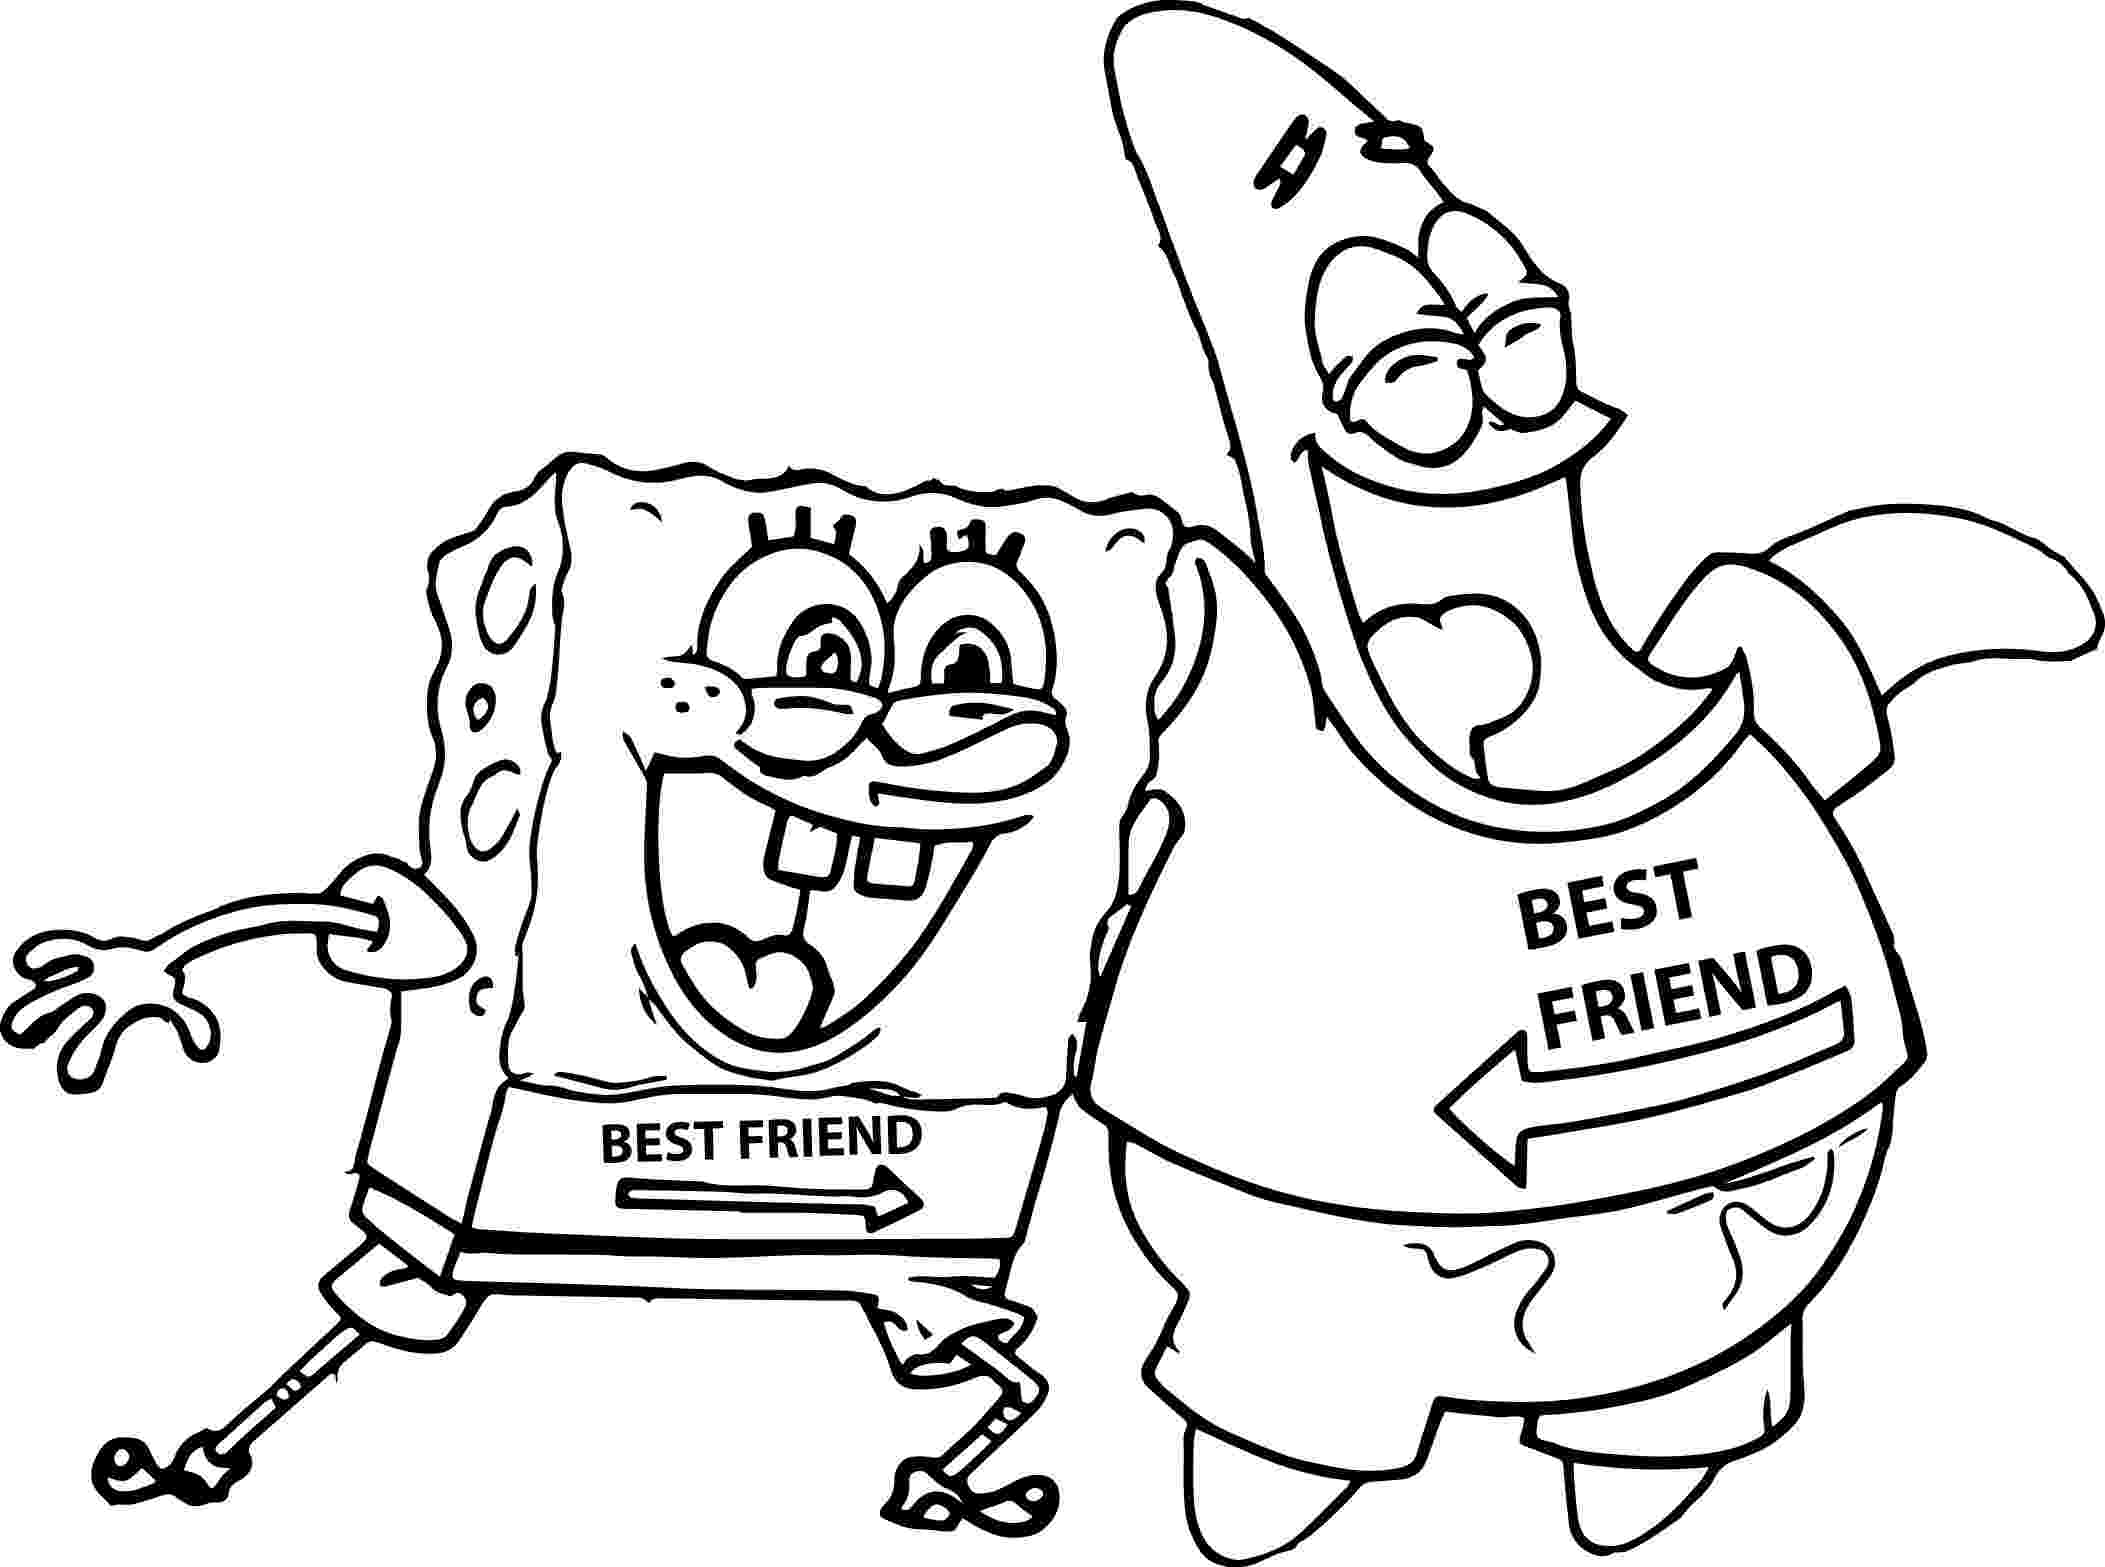 best friends coloring pages best friends coloring page cute coloring pages coloring best pages friends